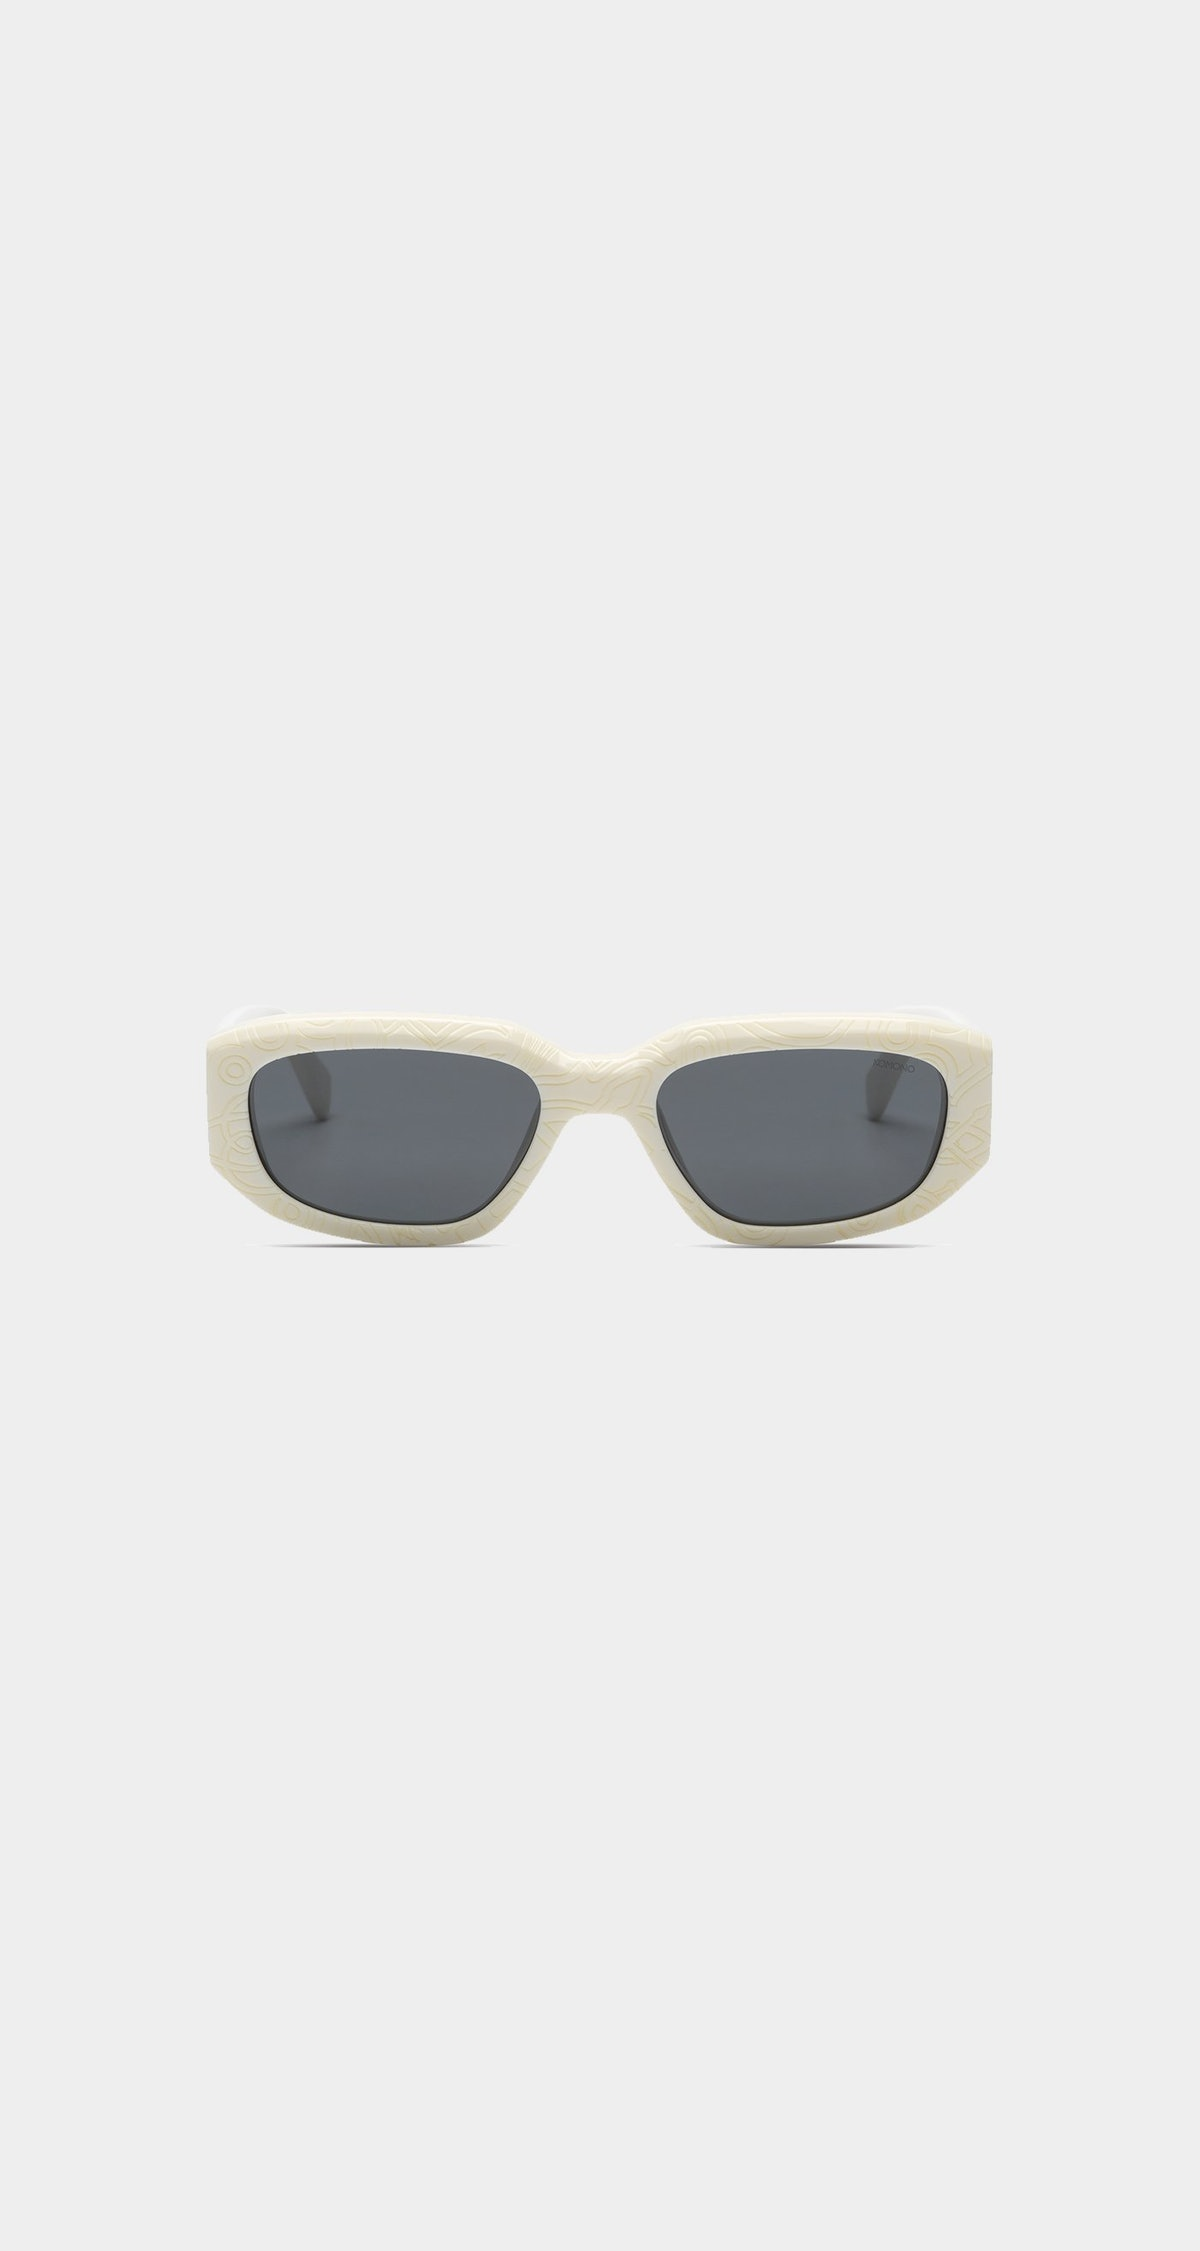 Ivory Rex sunglasses from Daily Paper x KOMONO collaboration.